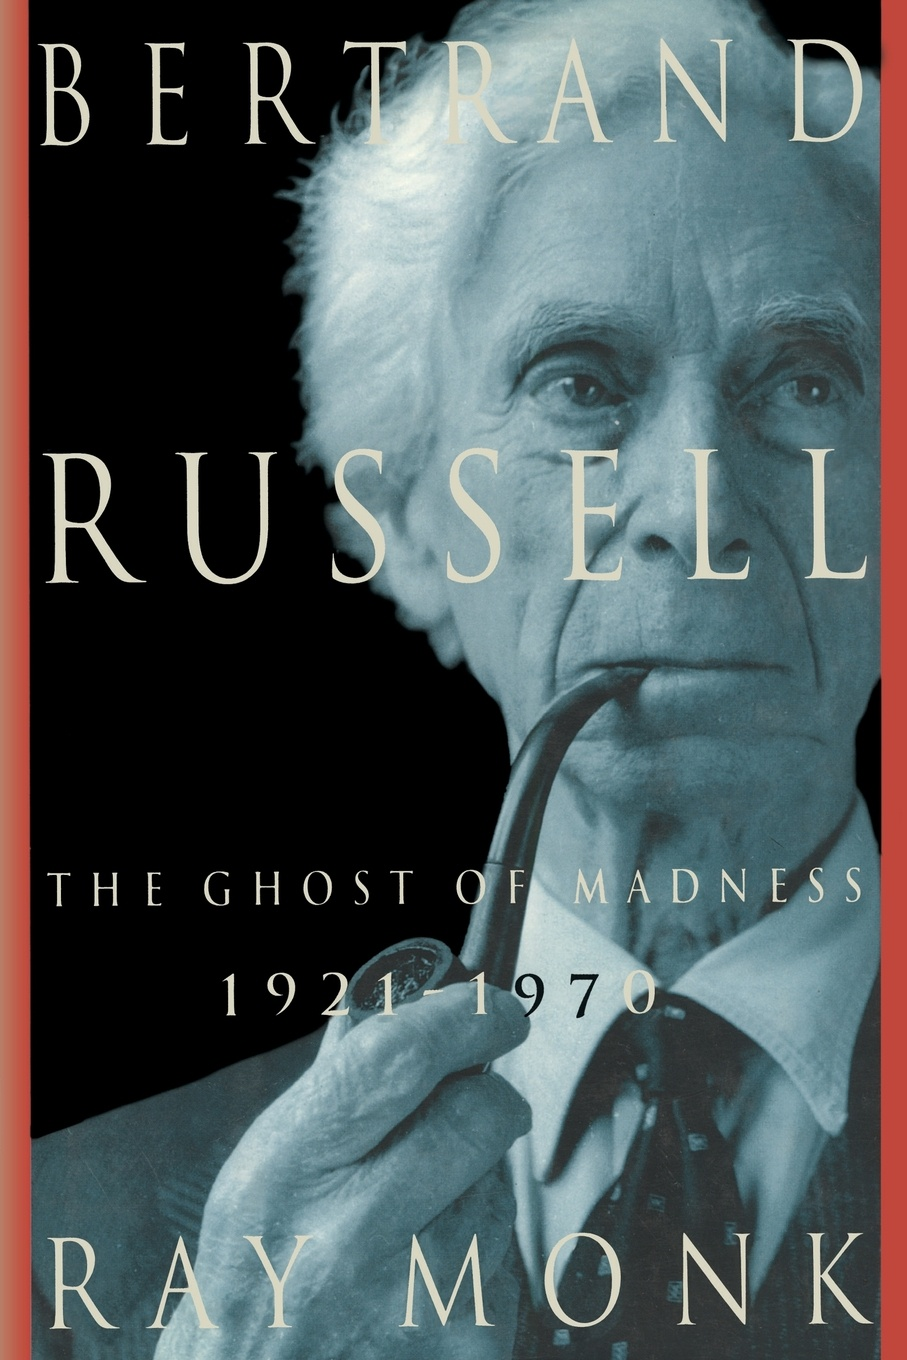 Ray Monk Bertrand Russell. 1921-1970, the Ghost of Madness russell bertrand the problems of philosophy